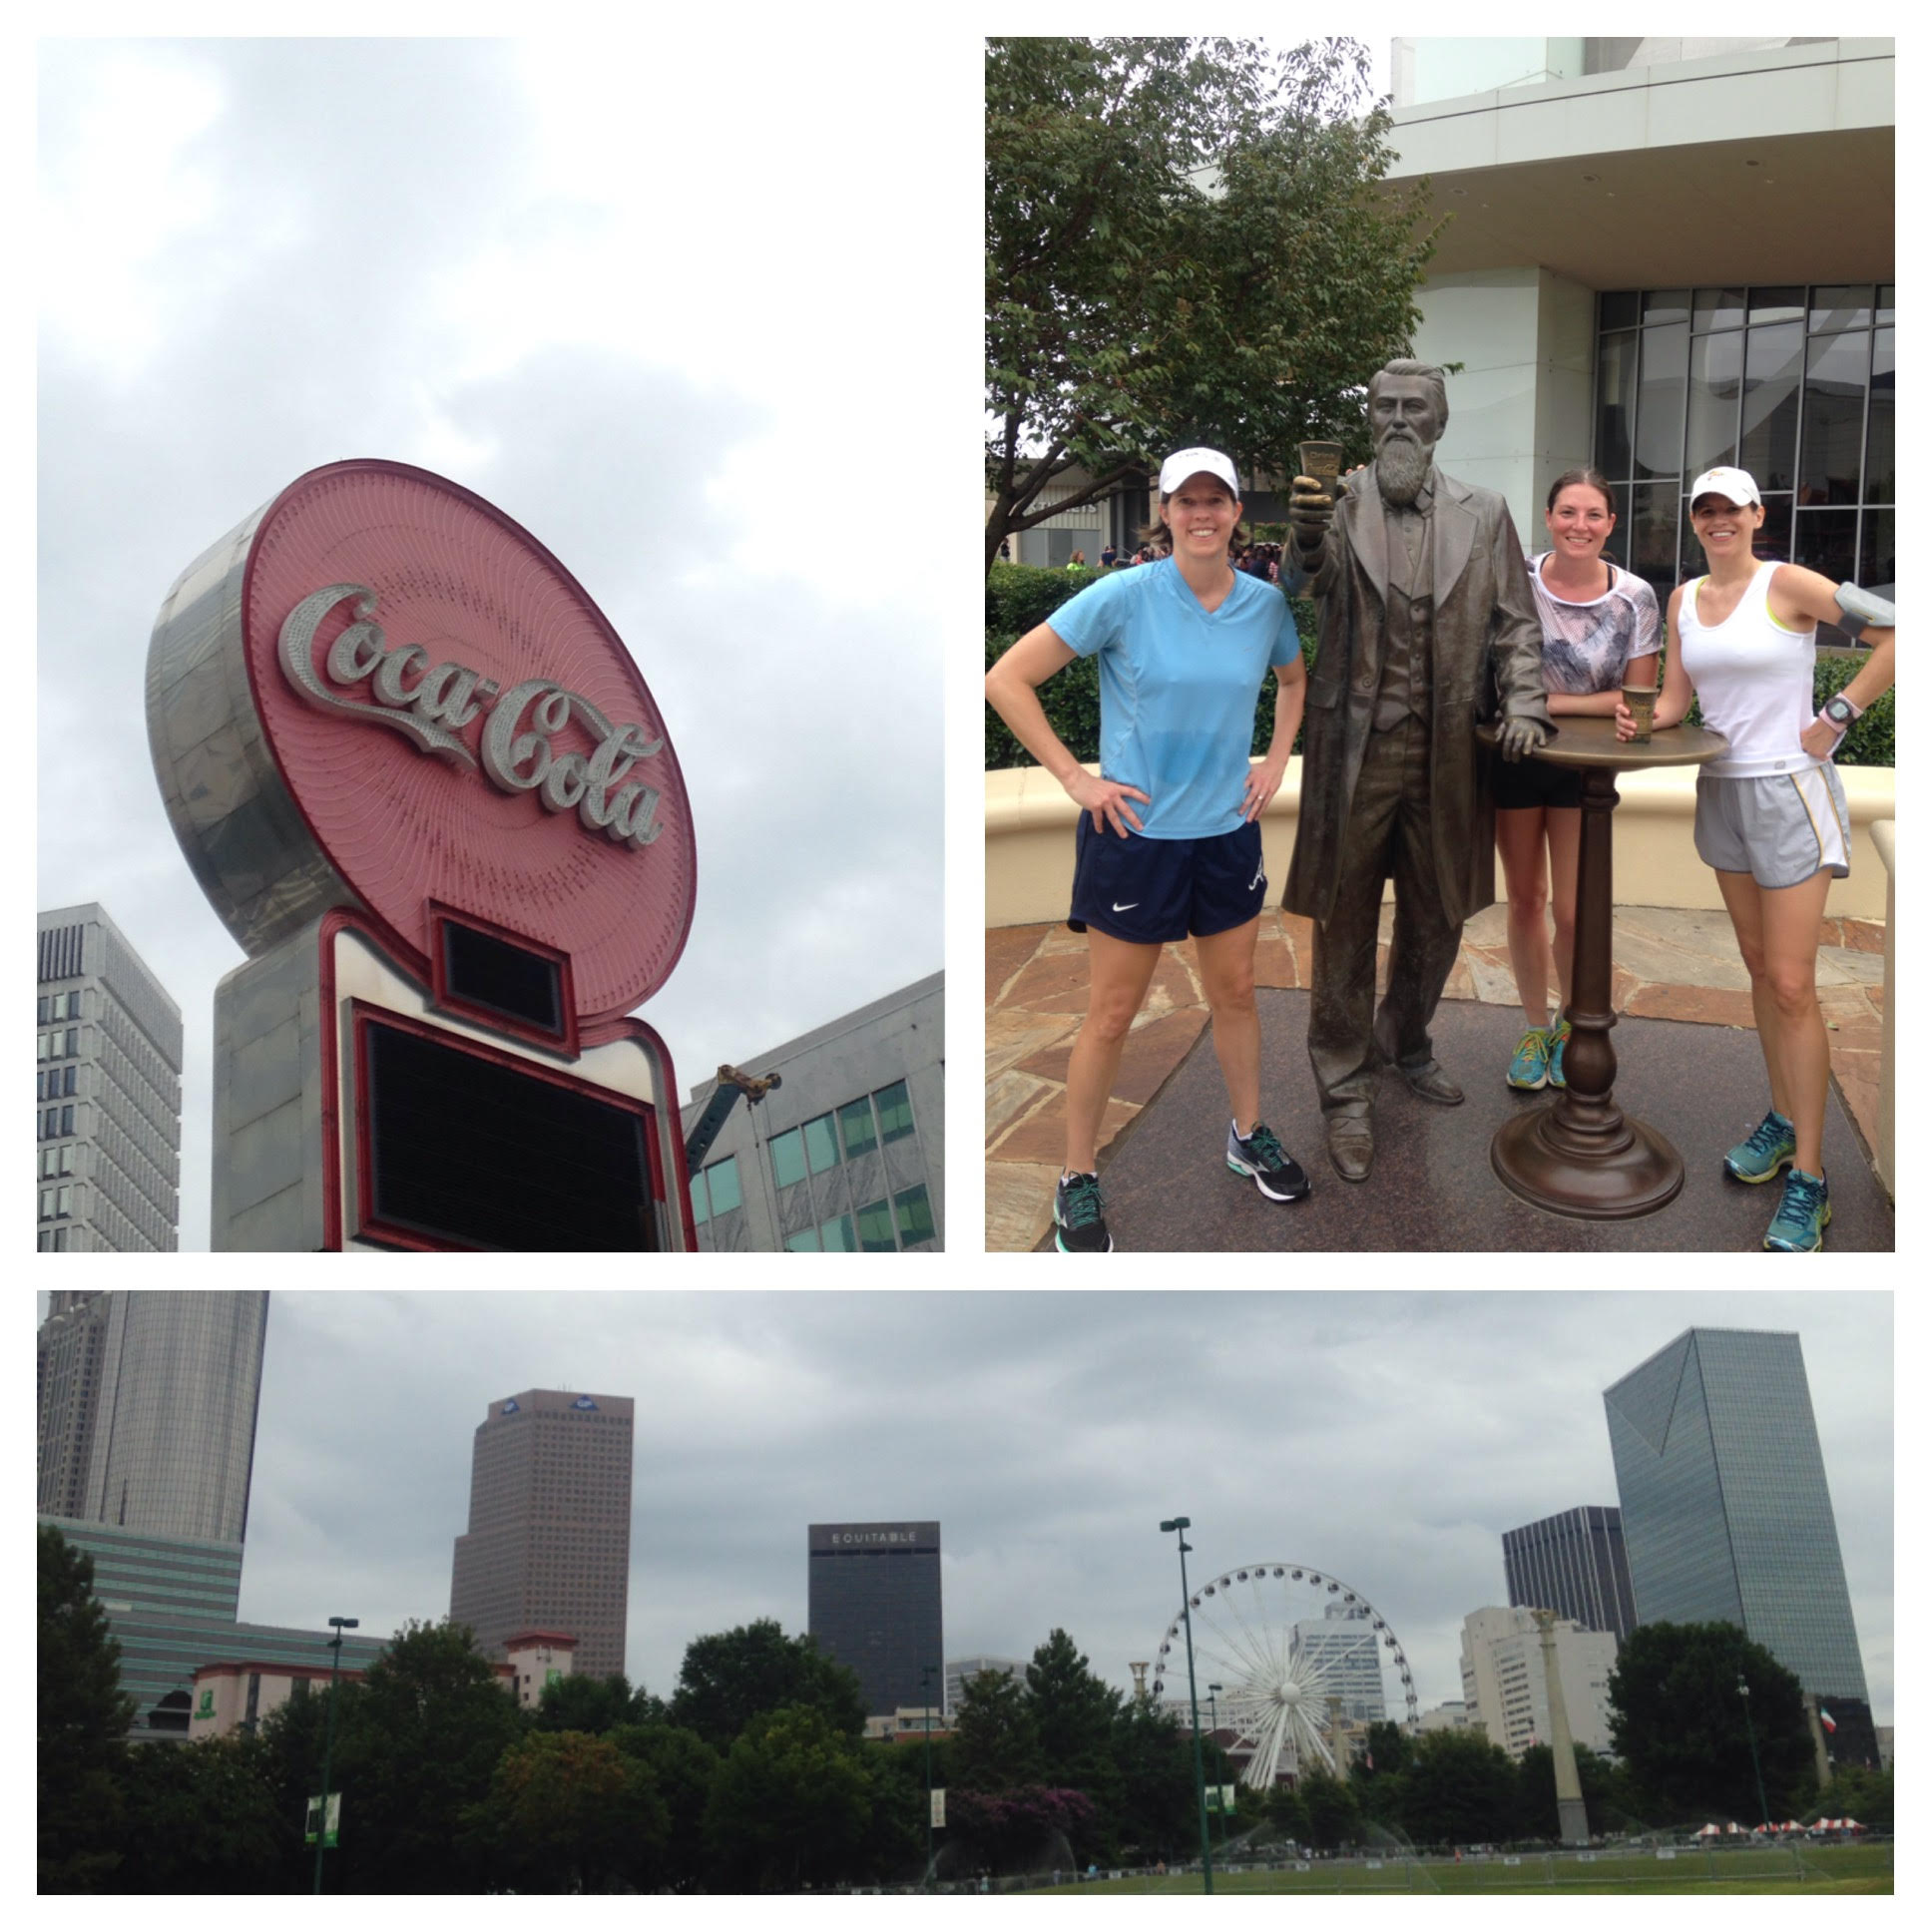 ORGANIZE YOUR NEXT CORPORATE OR SOCIAL GROUP RUNNING TOUR IN ATLANTA